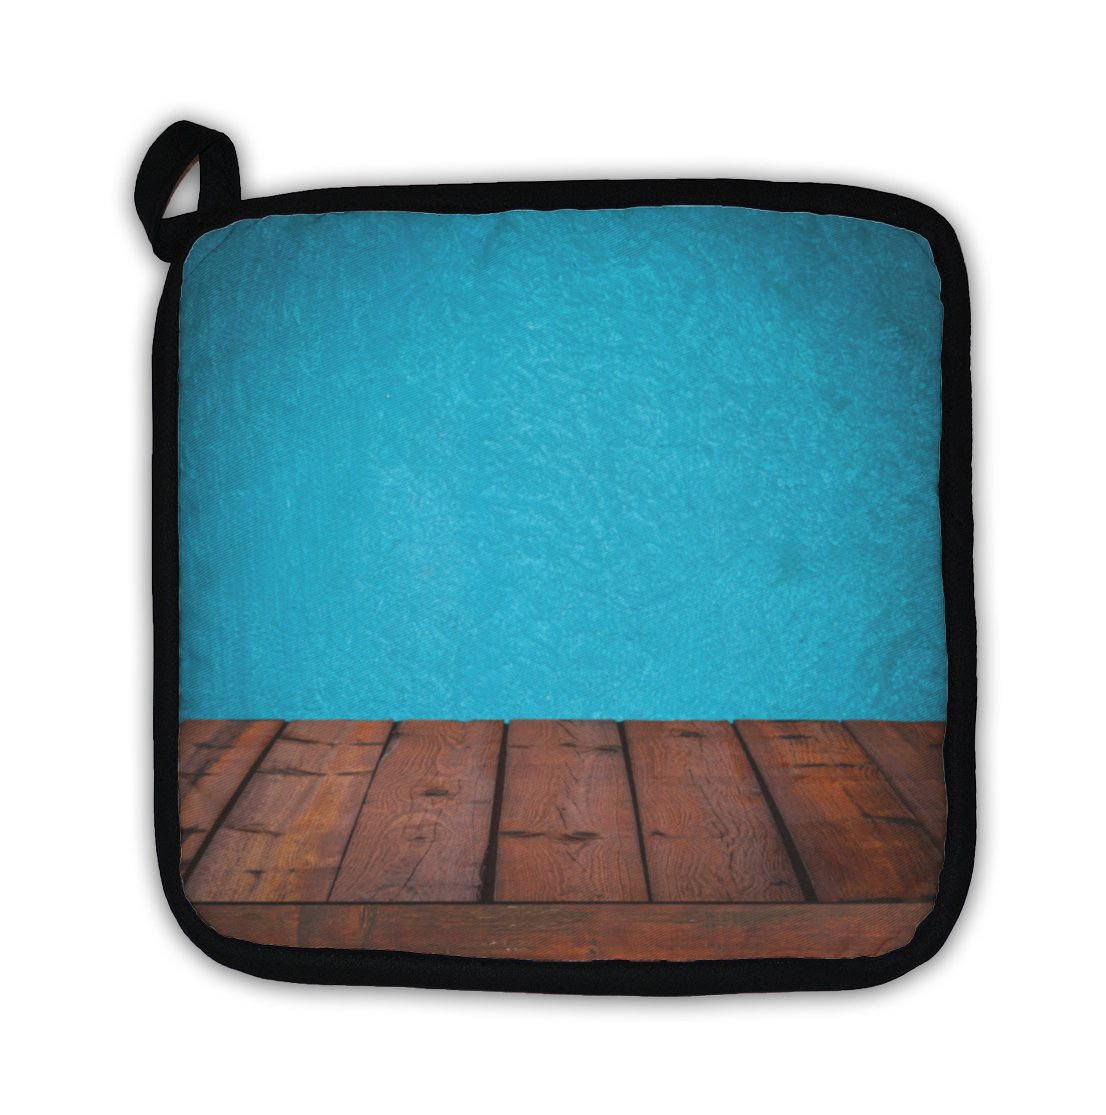 Gear New with Wooden Table & Grunge Blue Wall Pot Holder